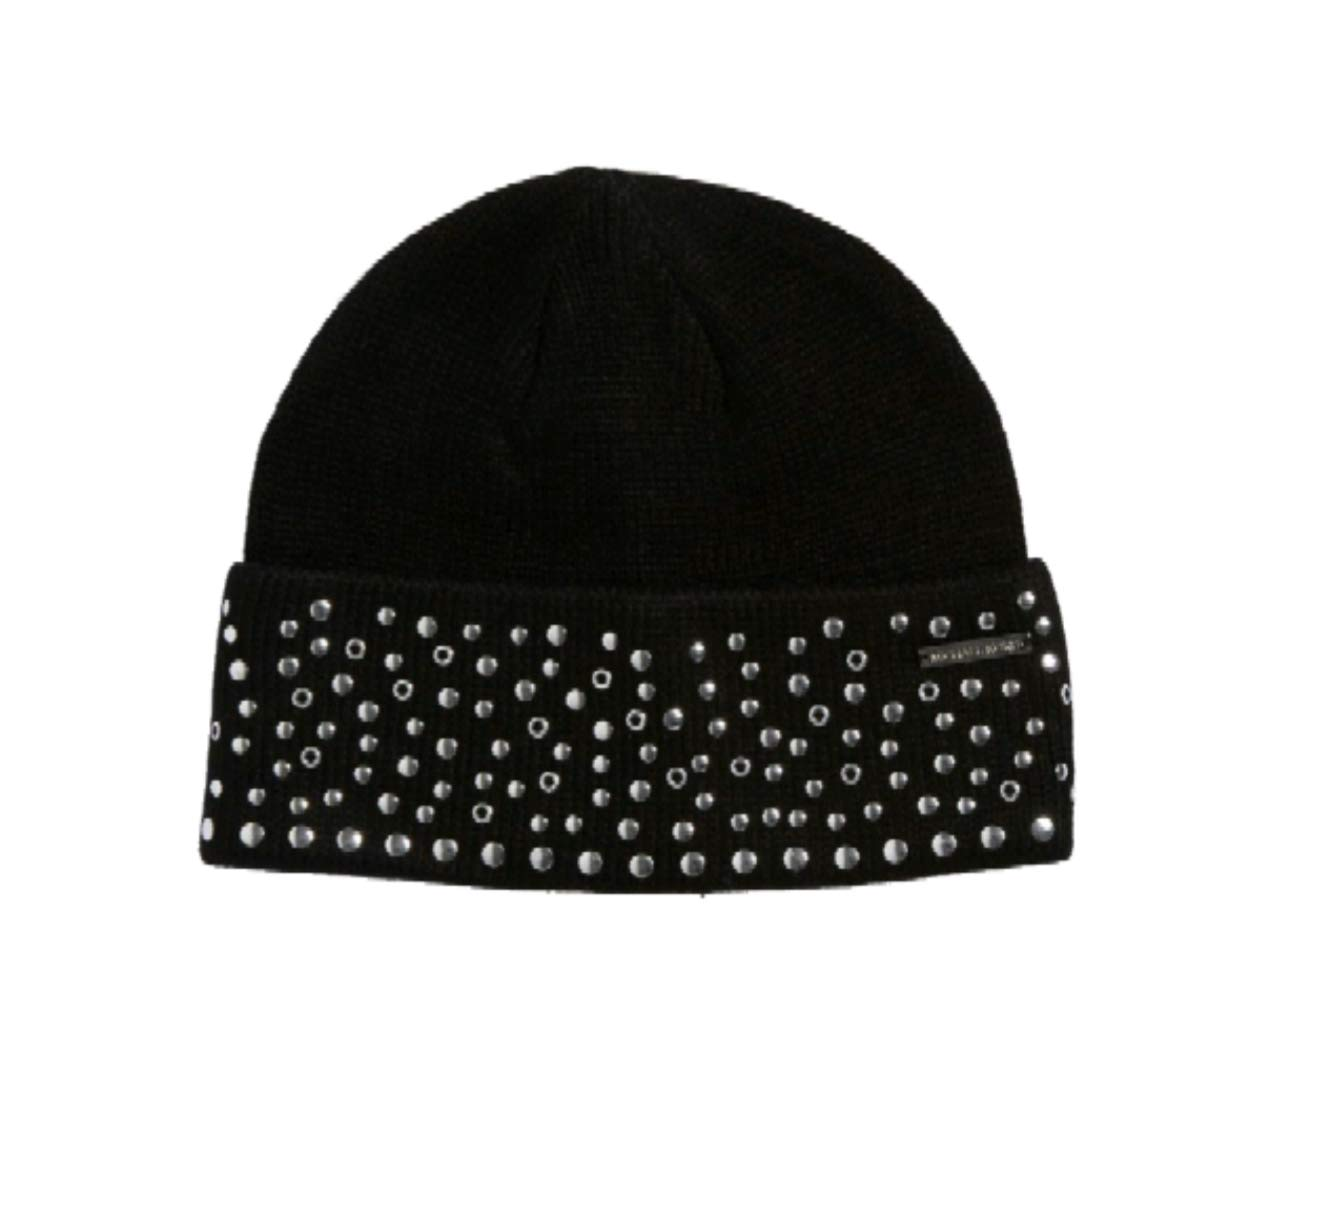 Michael Kors Women's Silver Studded Cuffed Beanie, Black